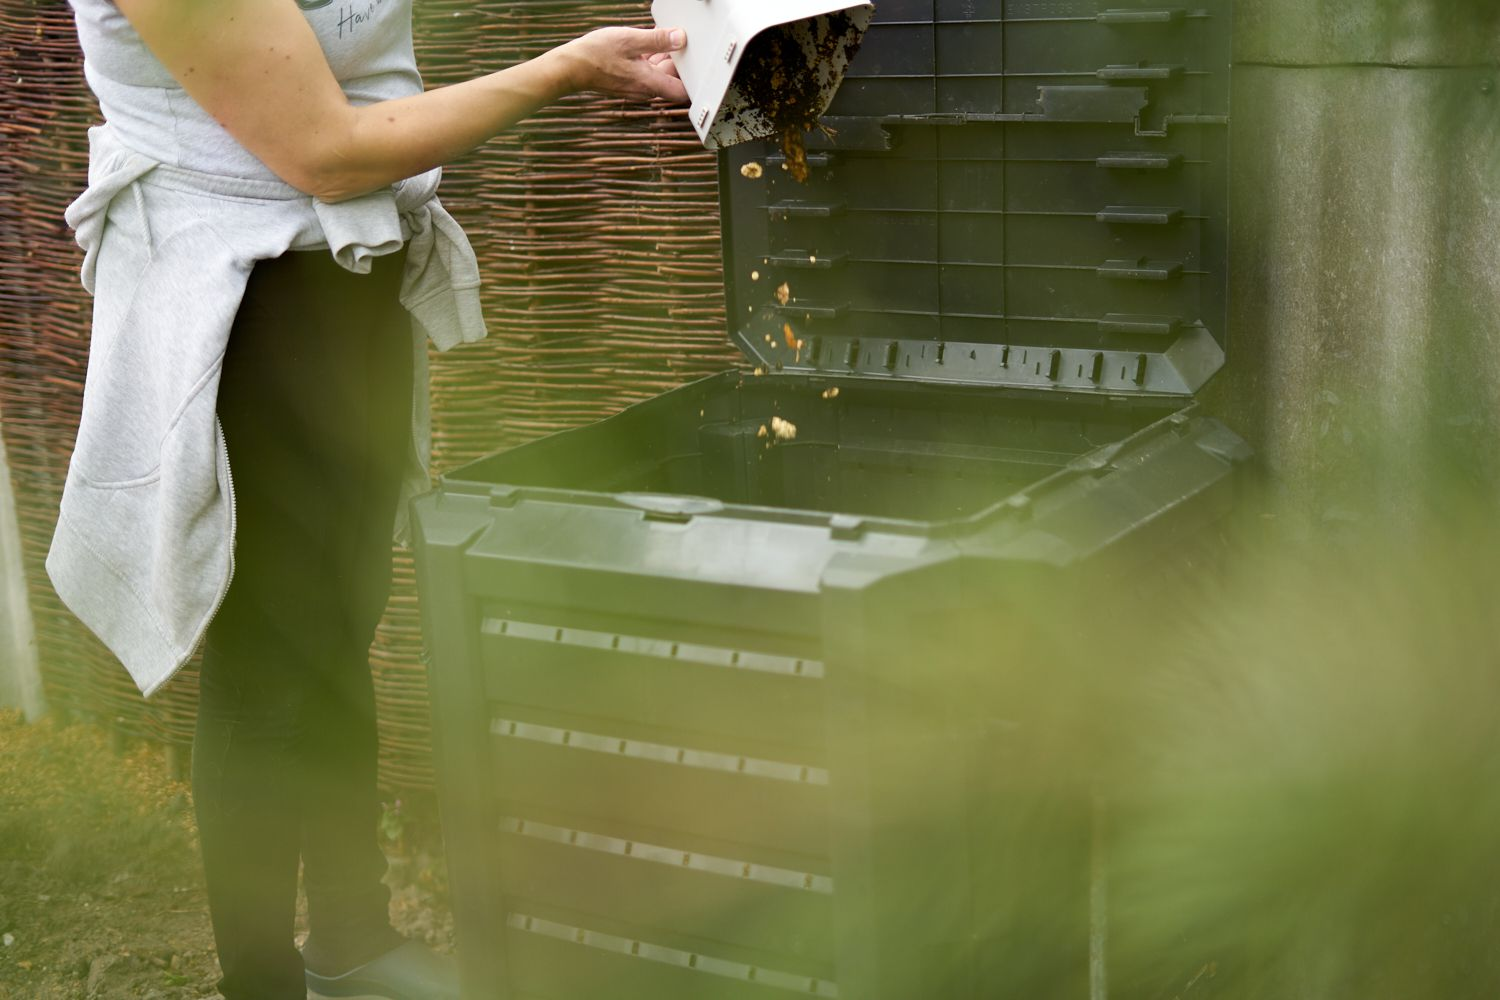 person dumps old food waste from white bin into large black composter